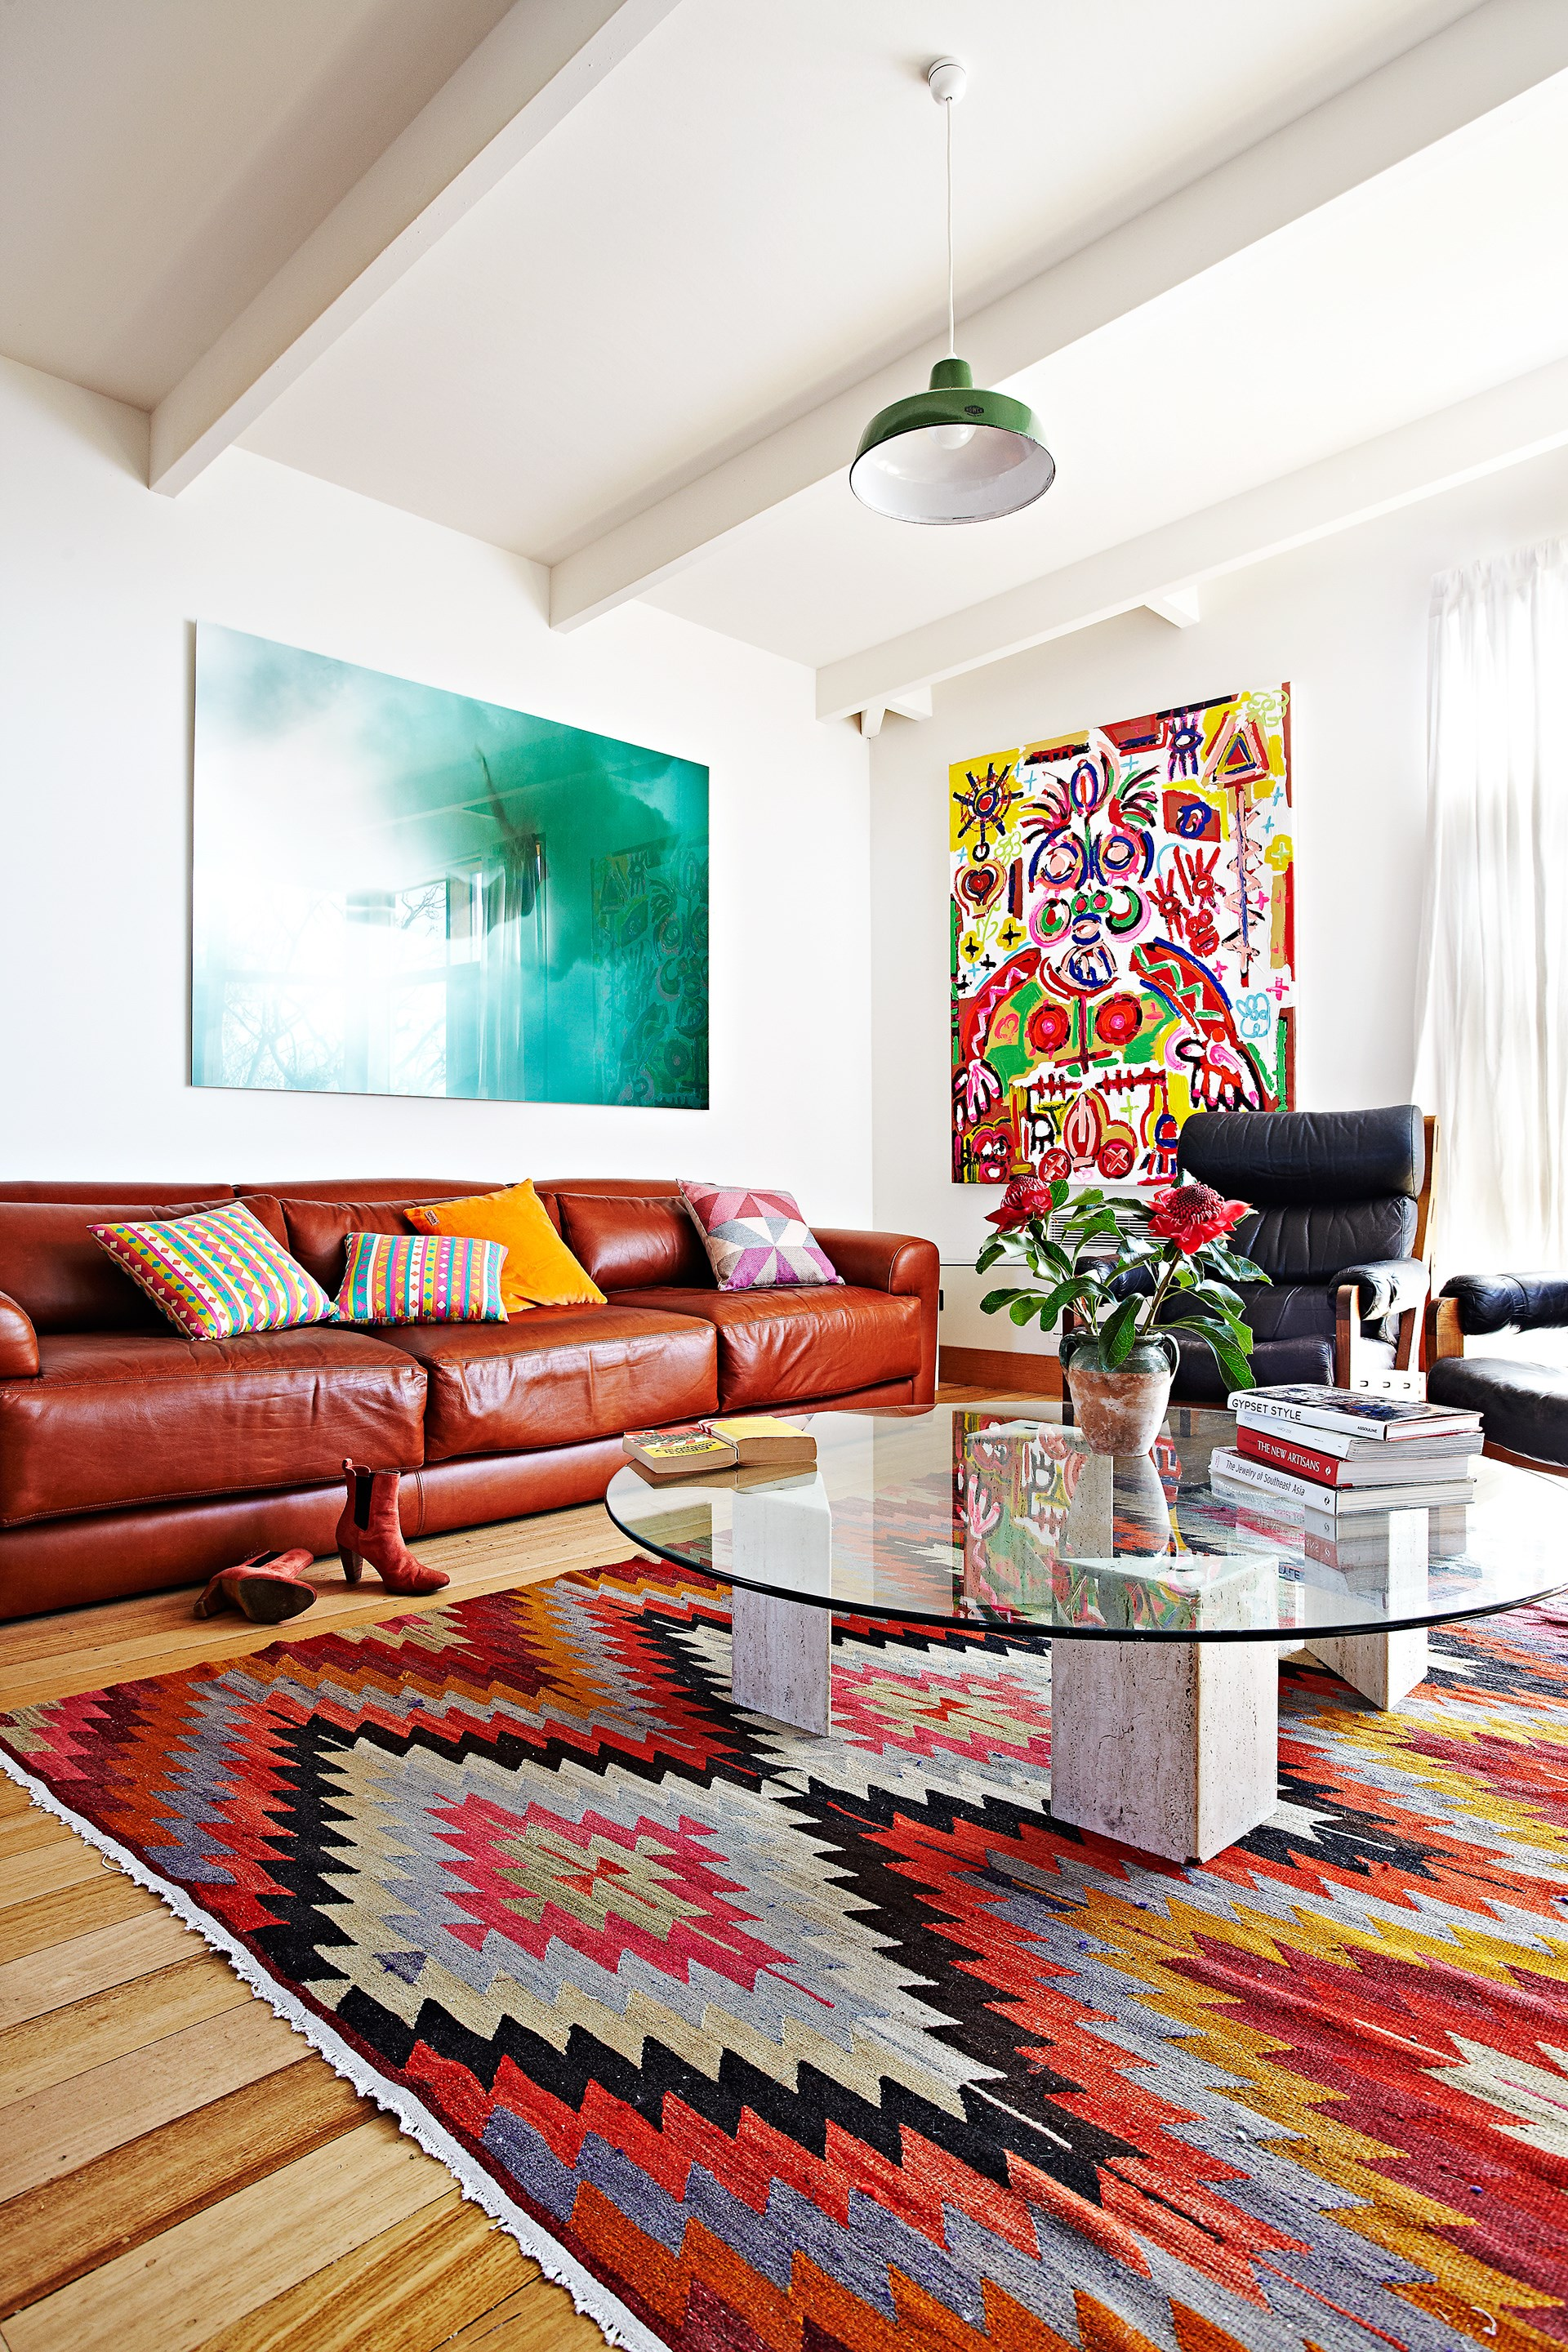 """**ECLECTIC**<p> <p>A home decorated in an [eclectic style](https://www.homestolove.com.au/8-eclectic-interior-design-ideas-4040